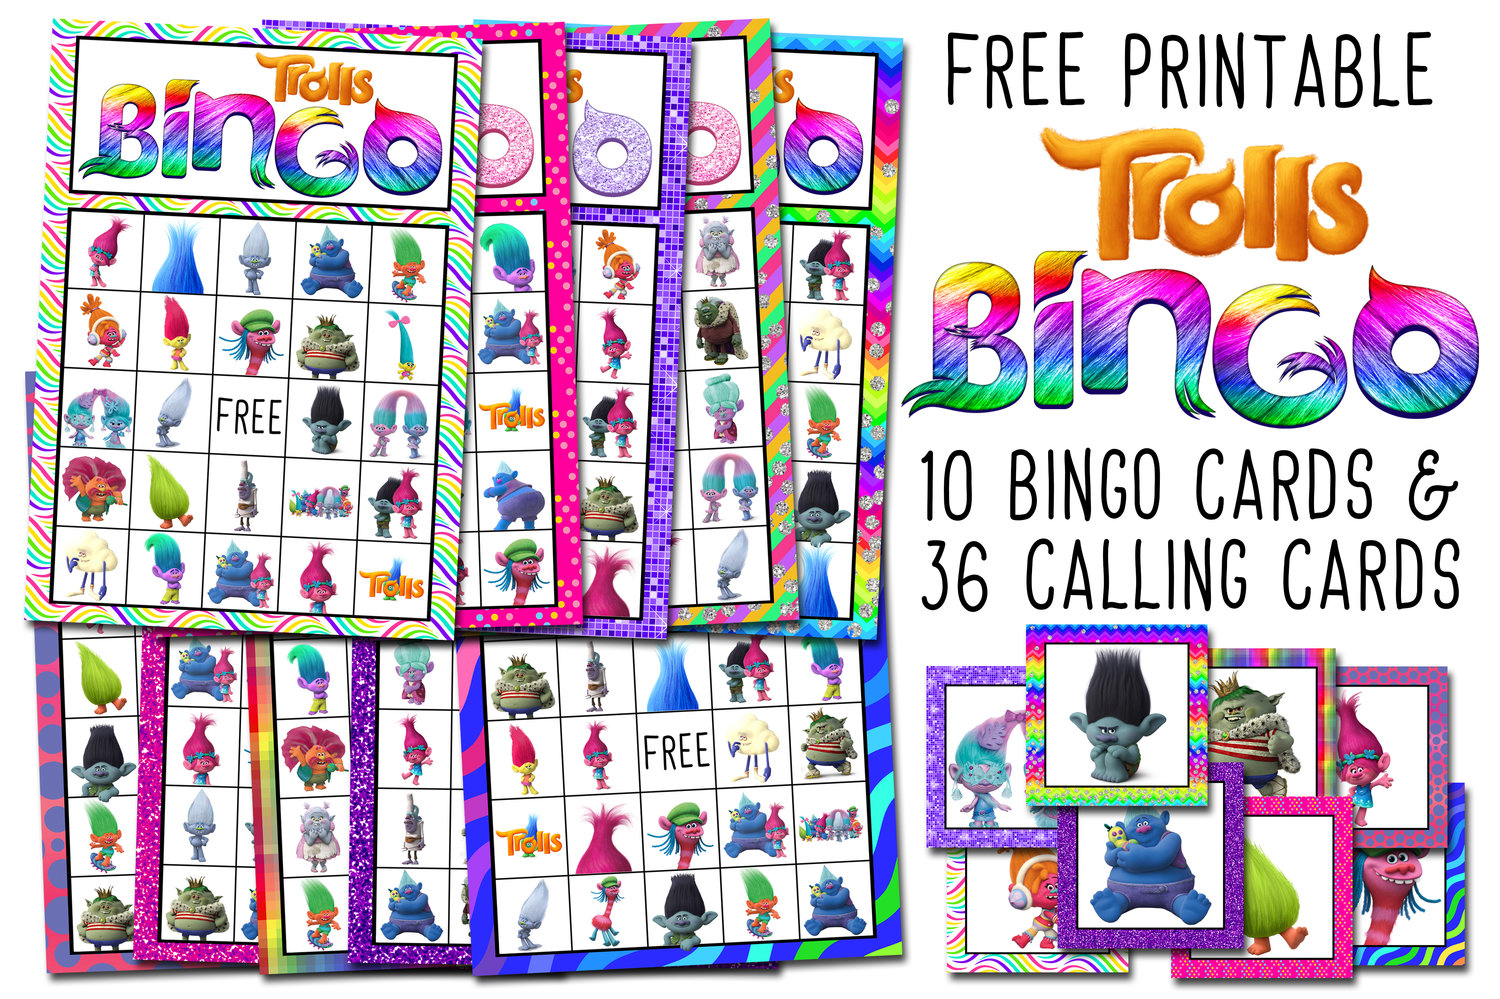 Trolls Free Printable Bingo Cards Trolls Birthday Party Game